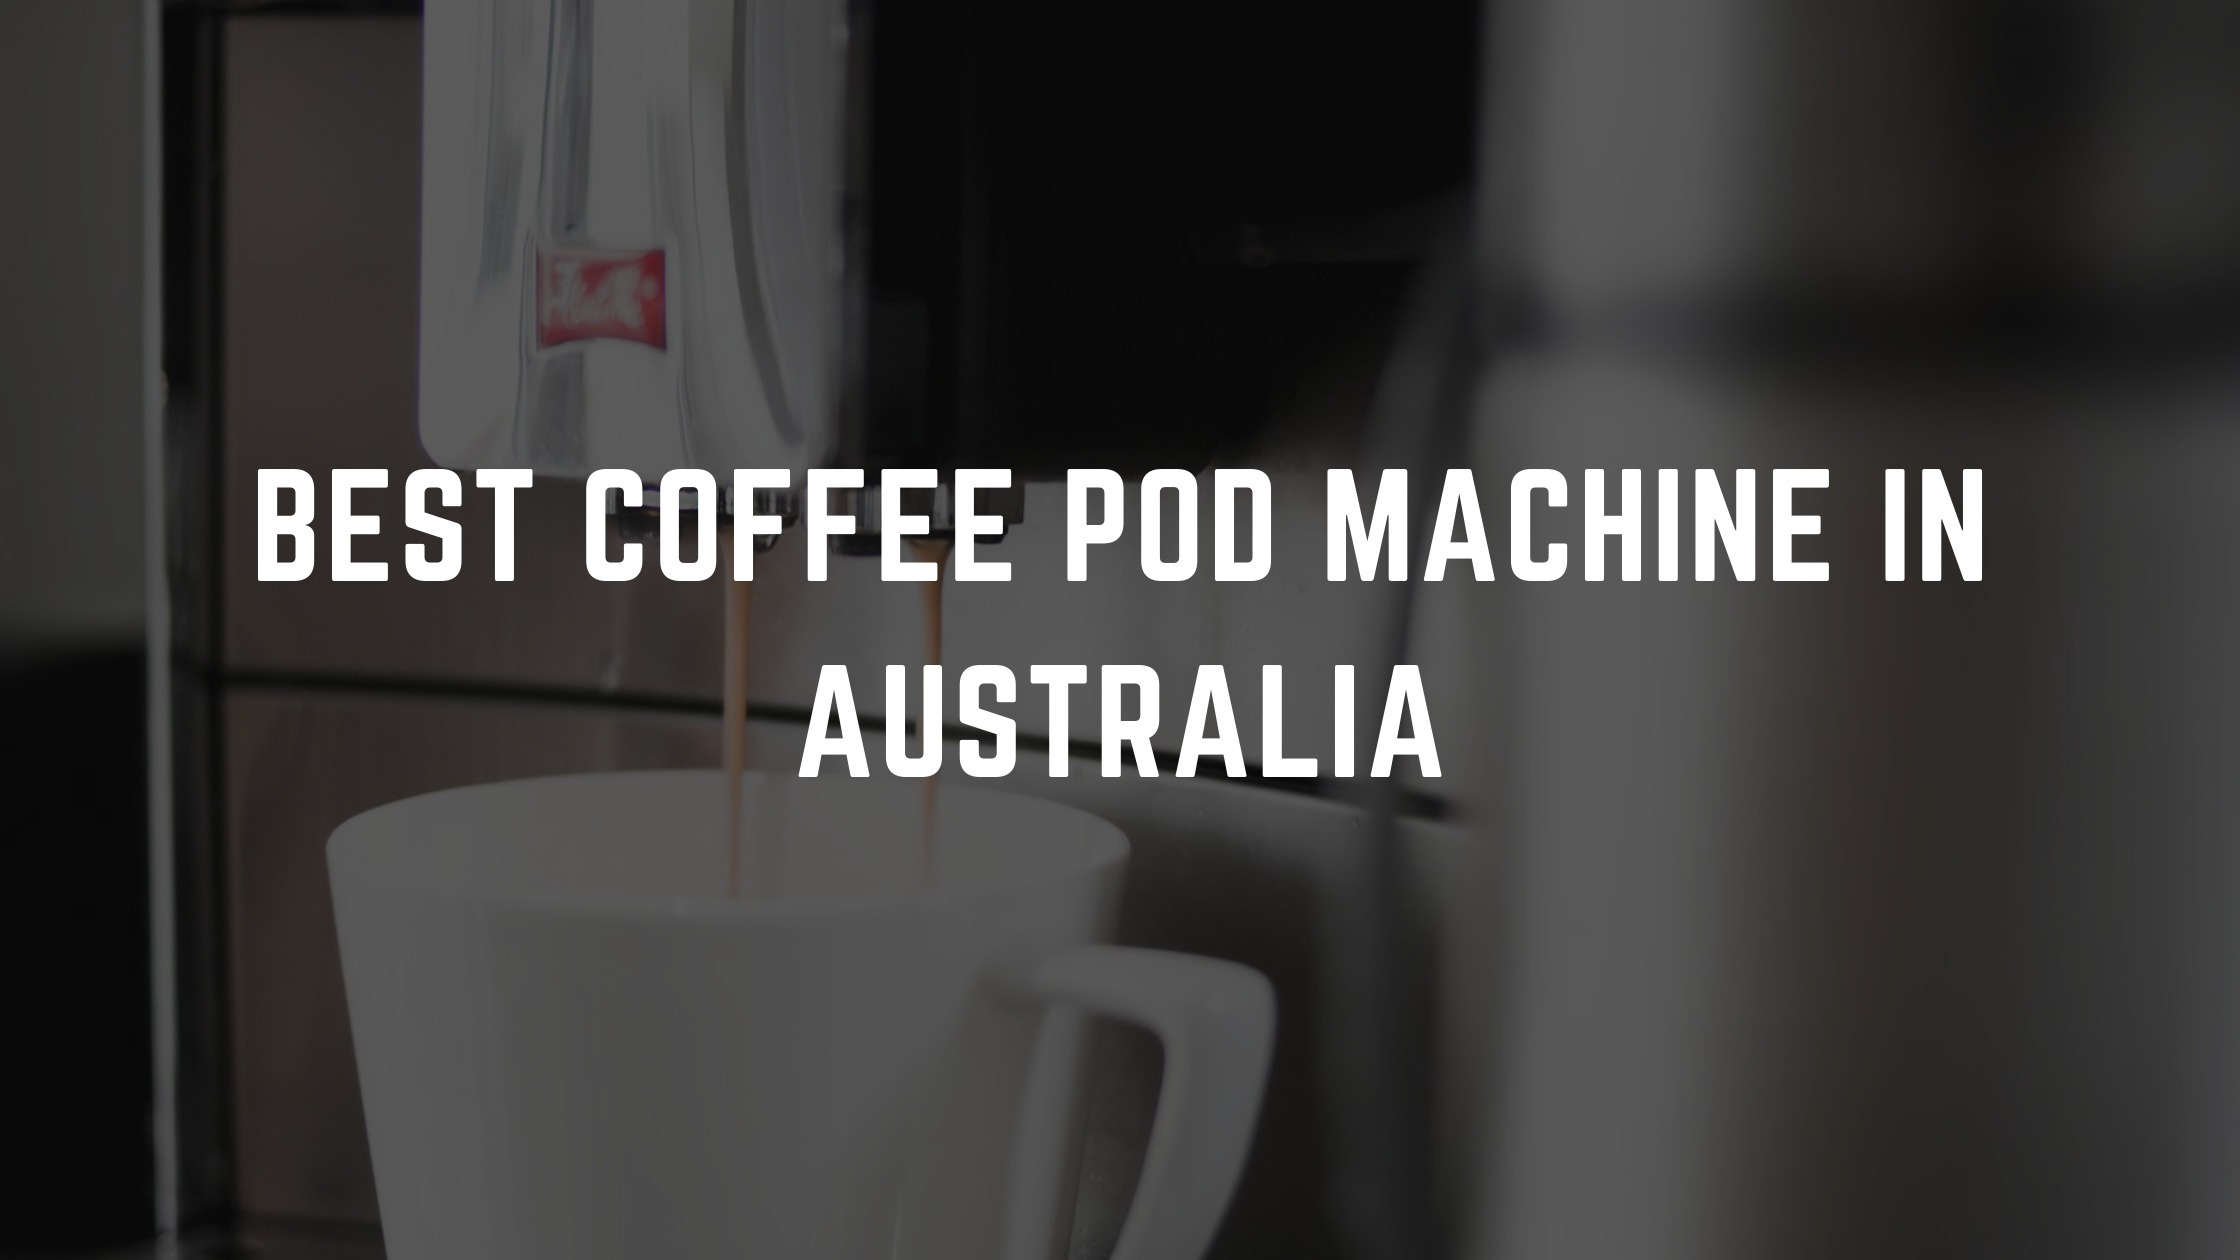 best coffee pod machine in australia